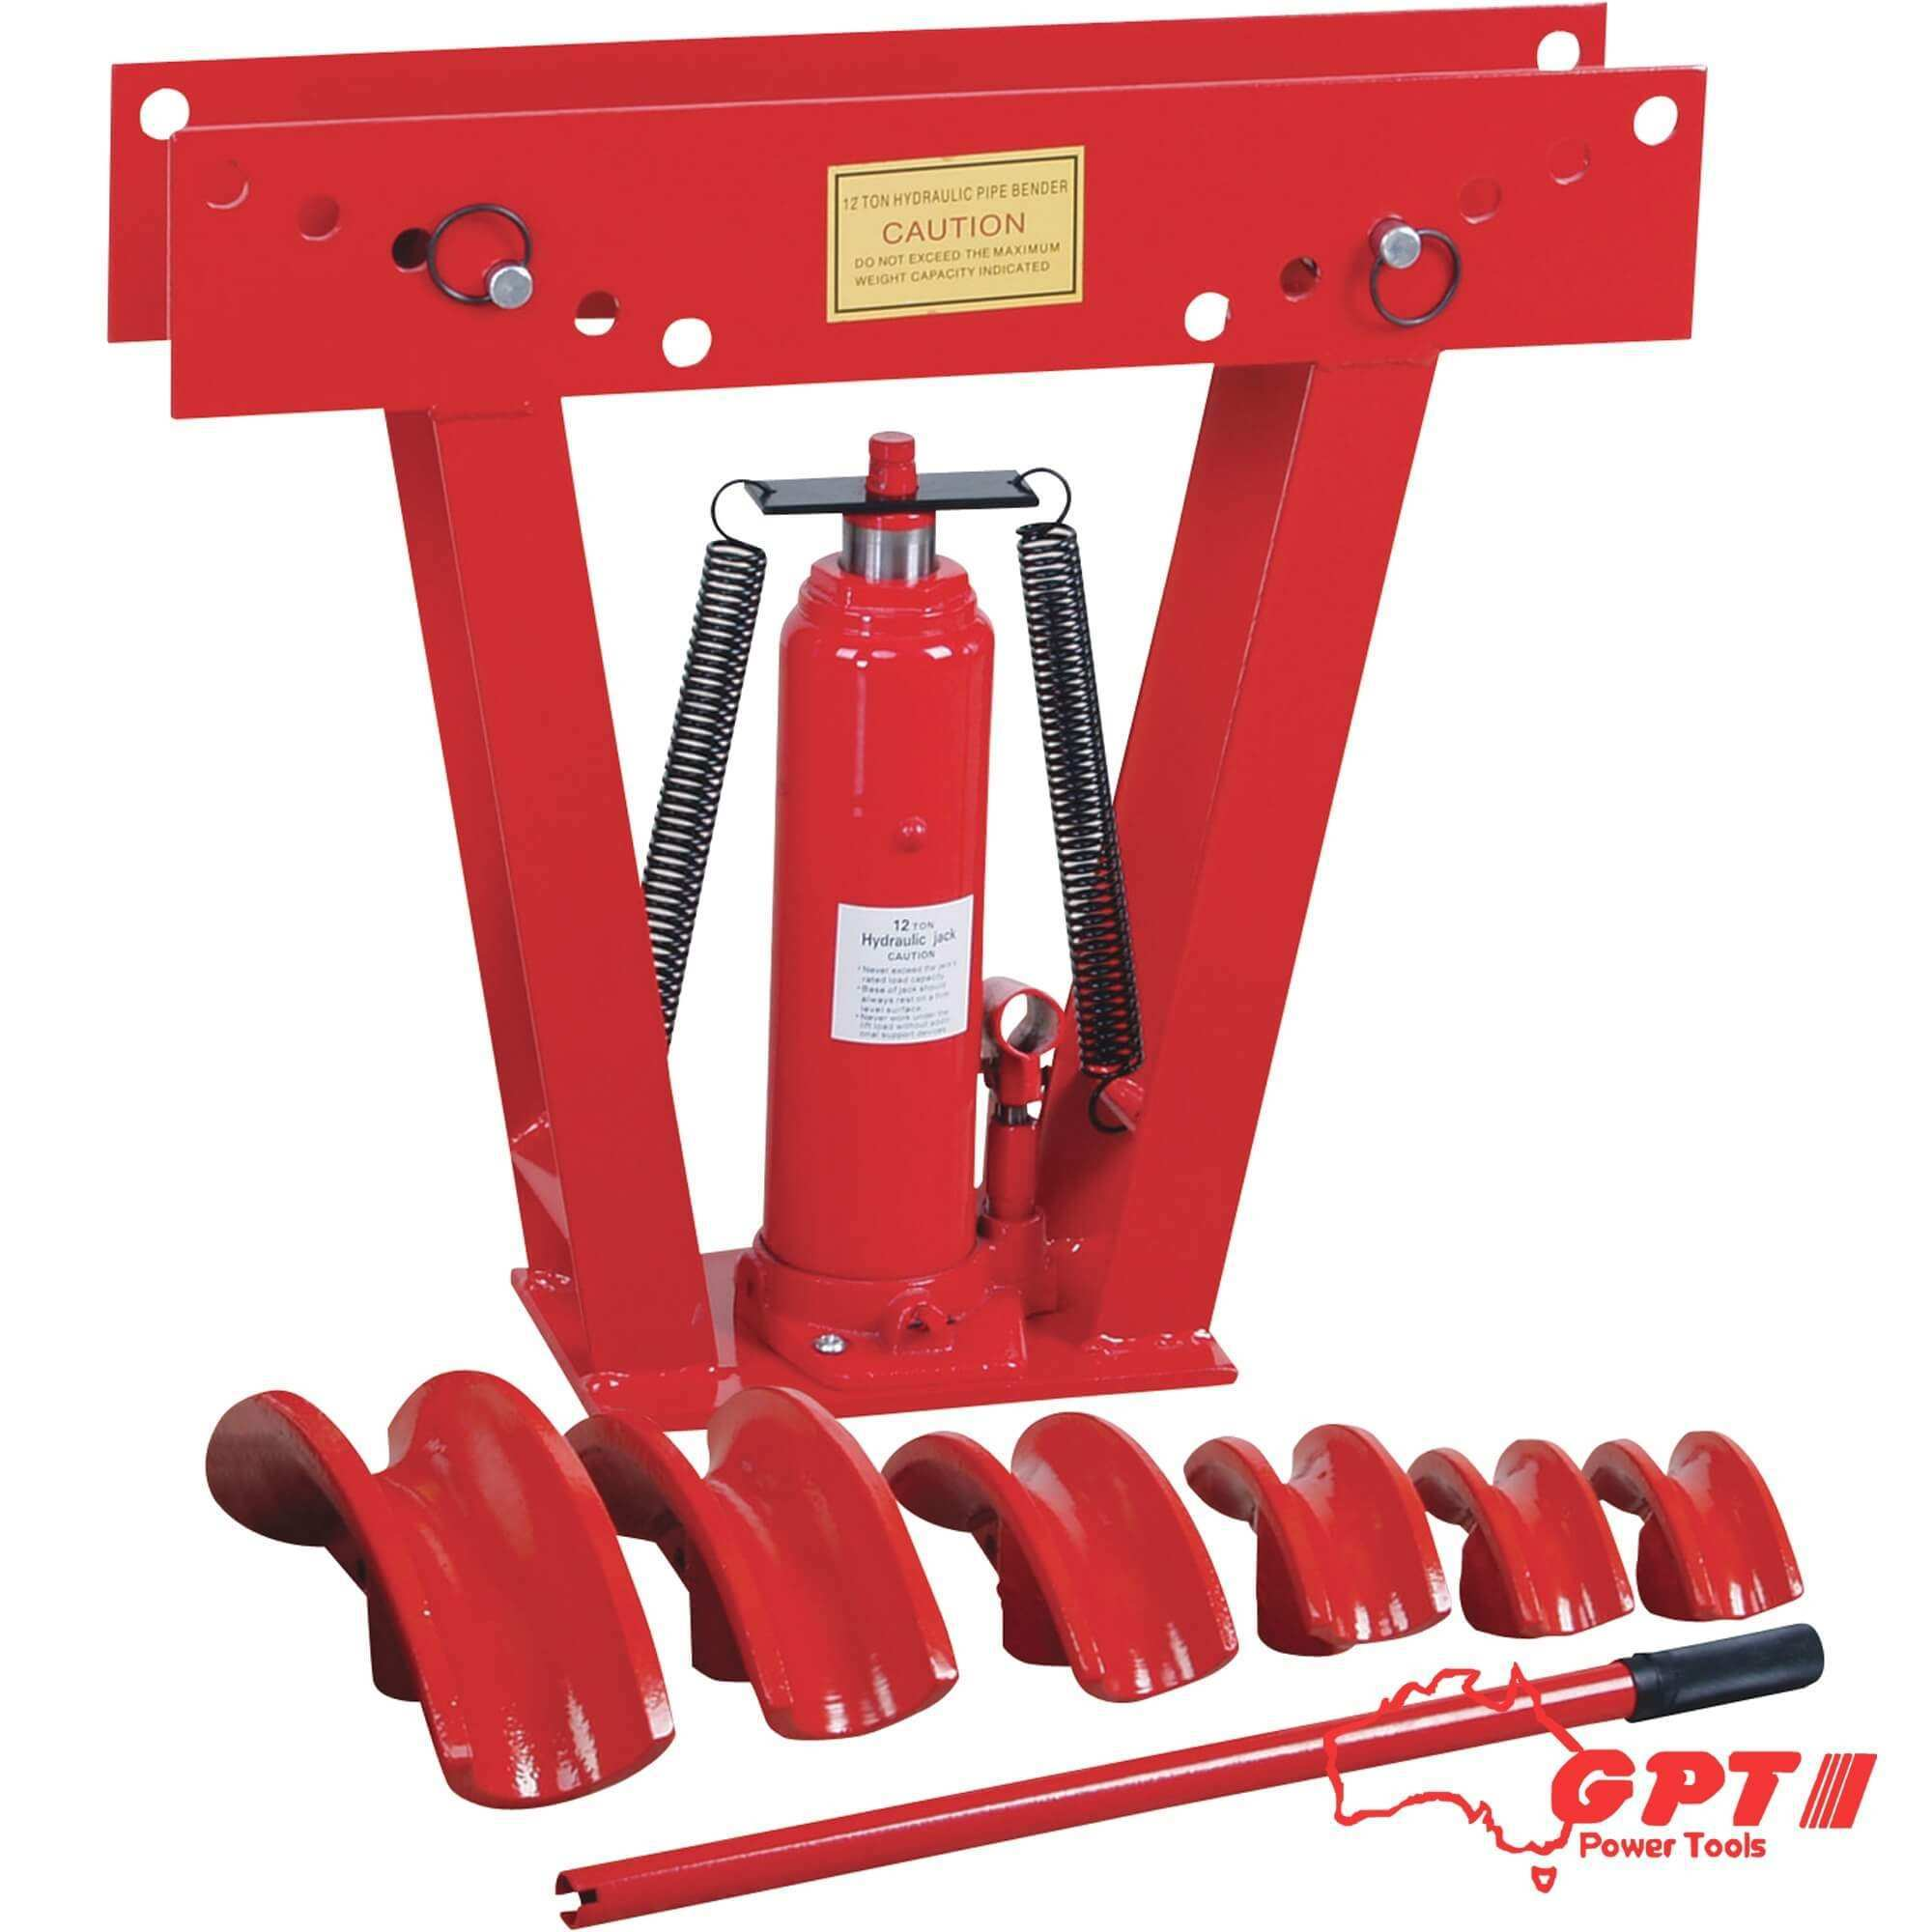 16 TON GPT HYDRAULIC PIPE BENDER W/ 8 PIPE ATTACHMENT | 180⁰ BEND 75MM MAX BEND